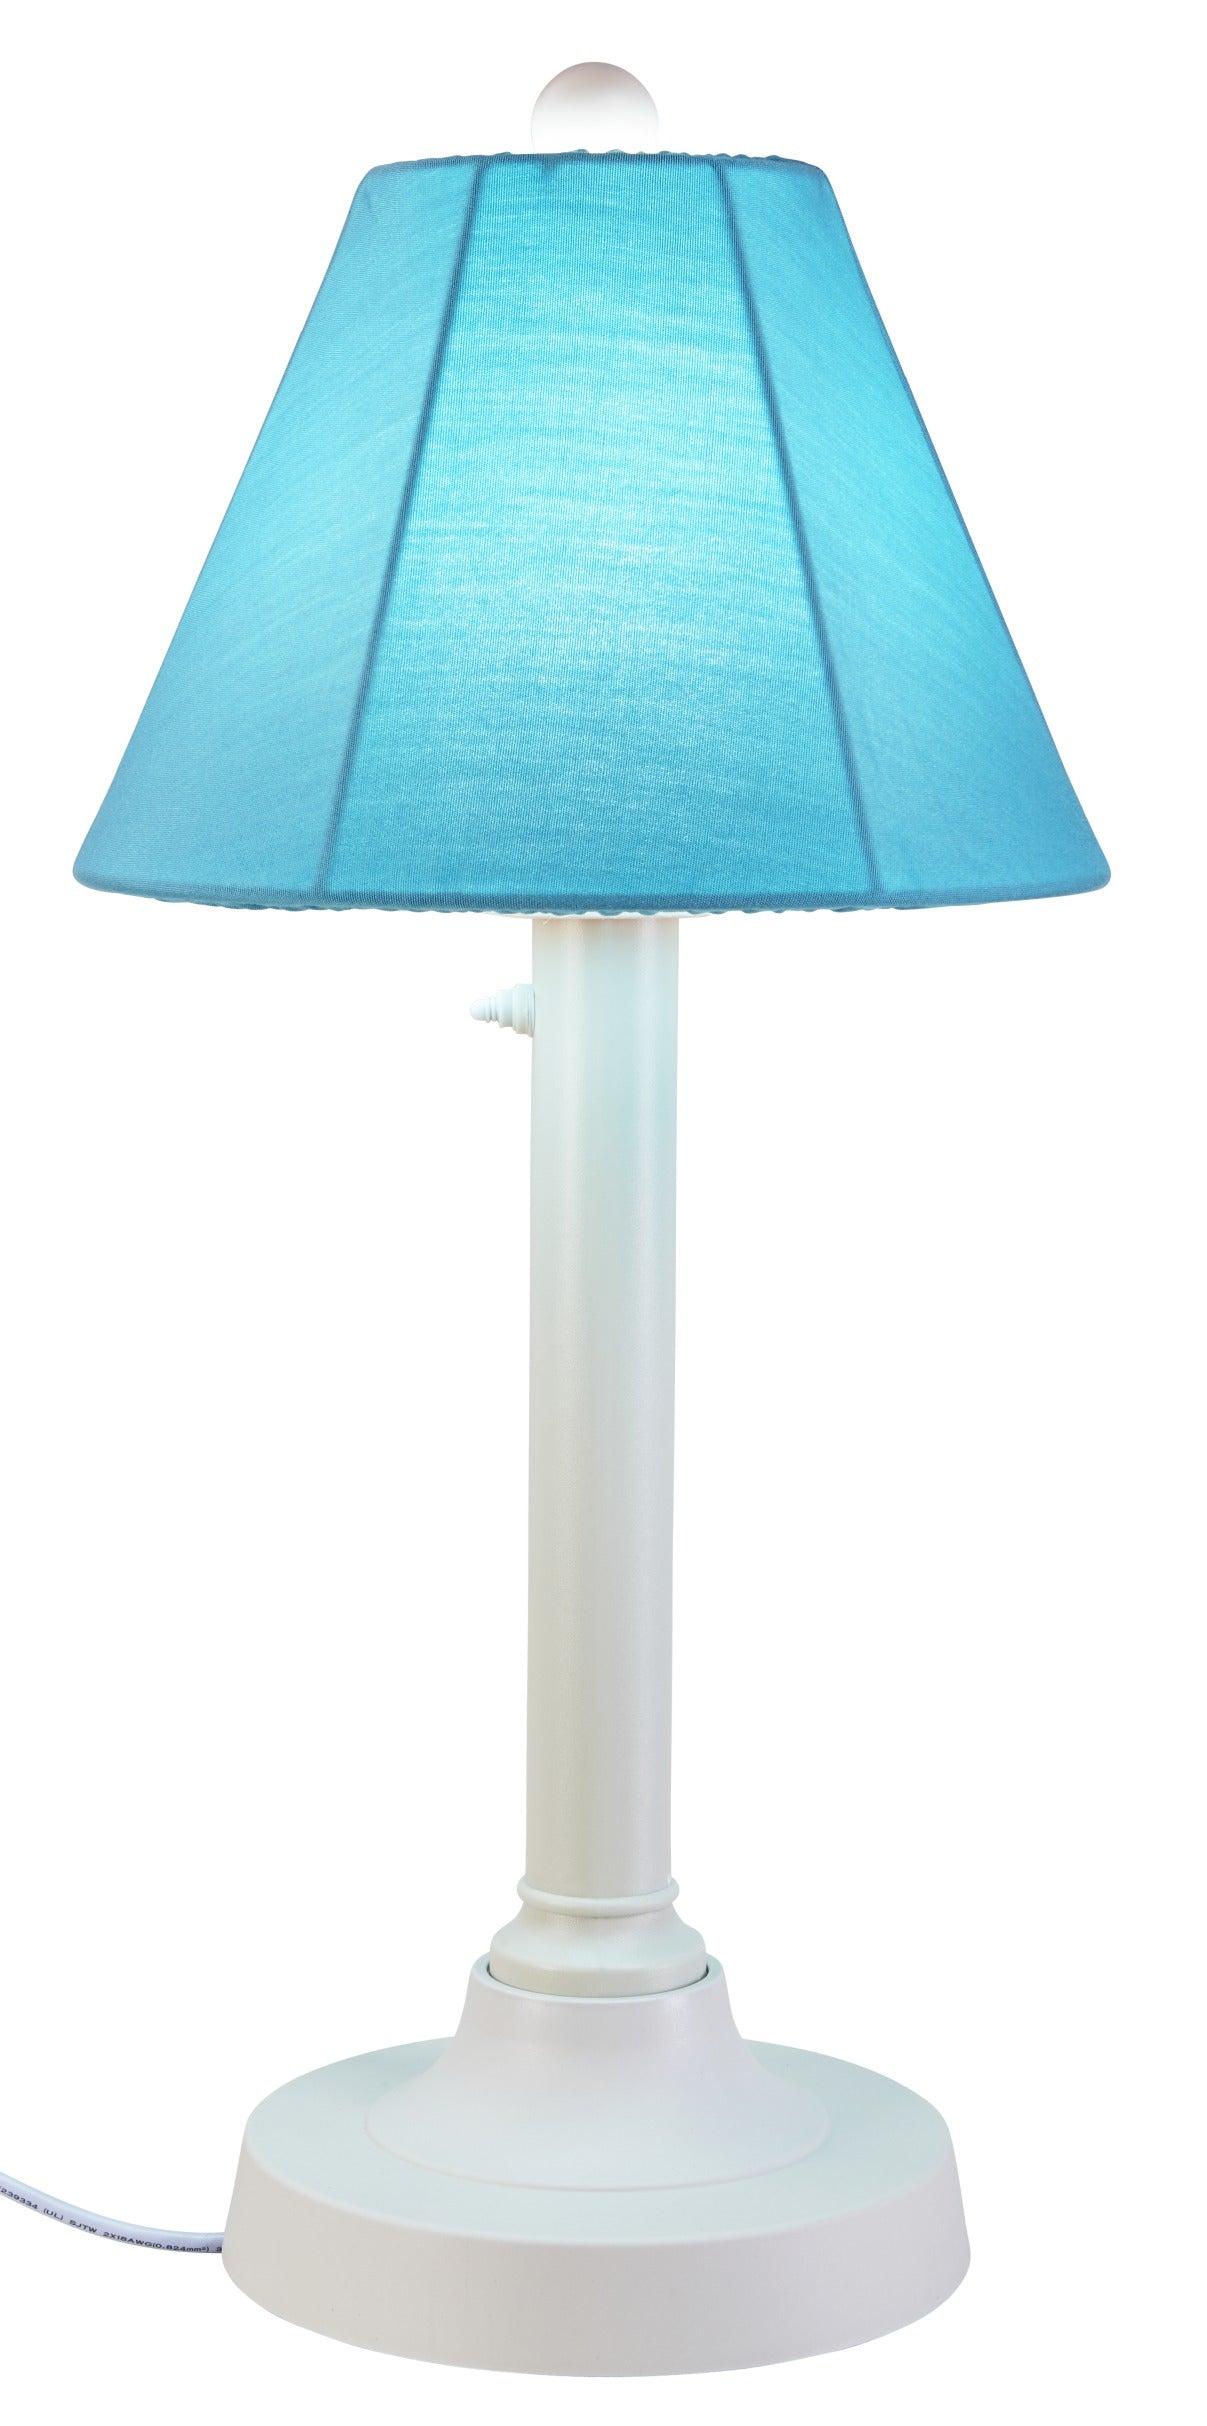 "San Juan 30"" Table Lamp 38121 with 2"" white body and canvas Aruba Sunbrella shade fabric"